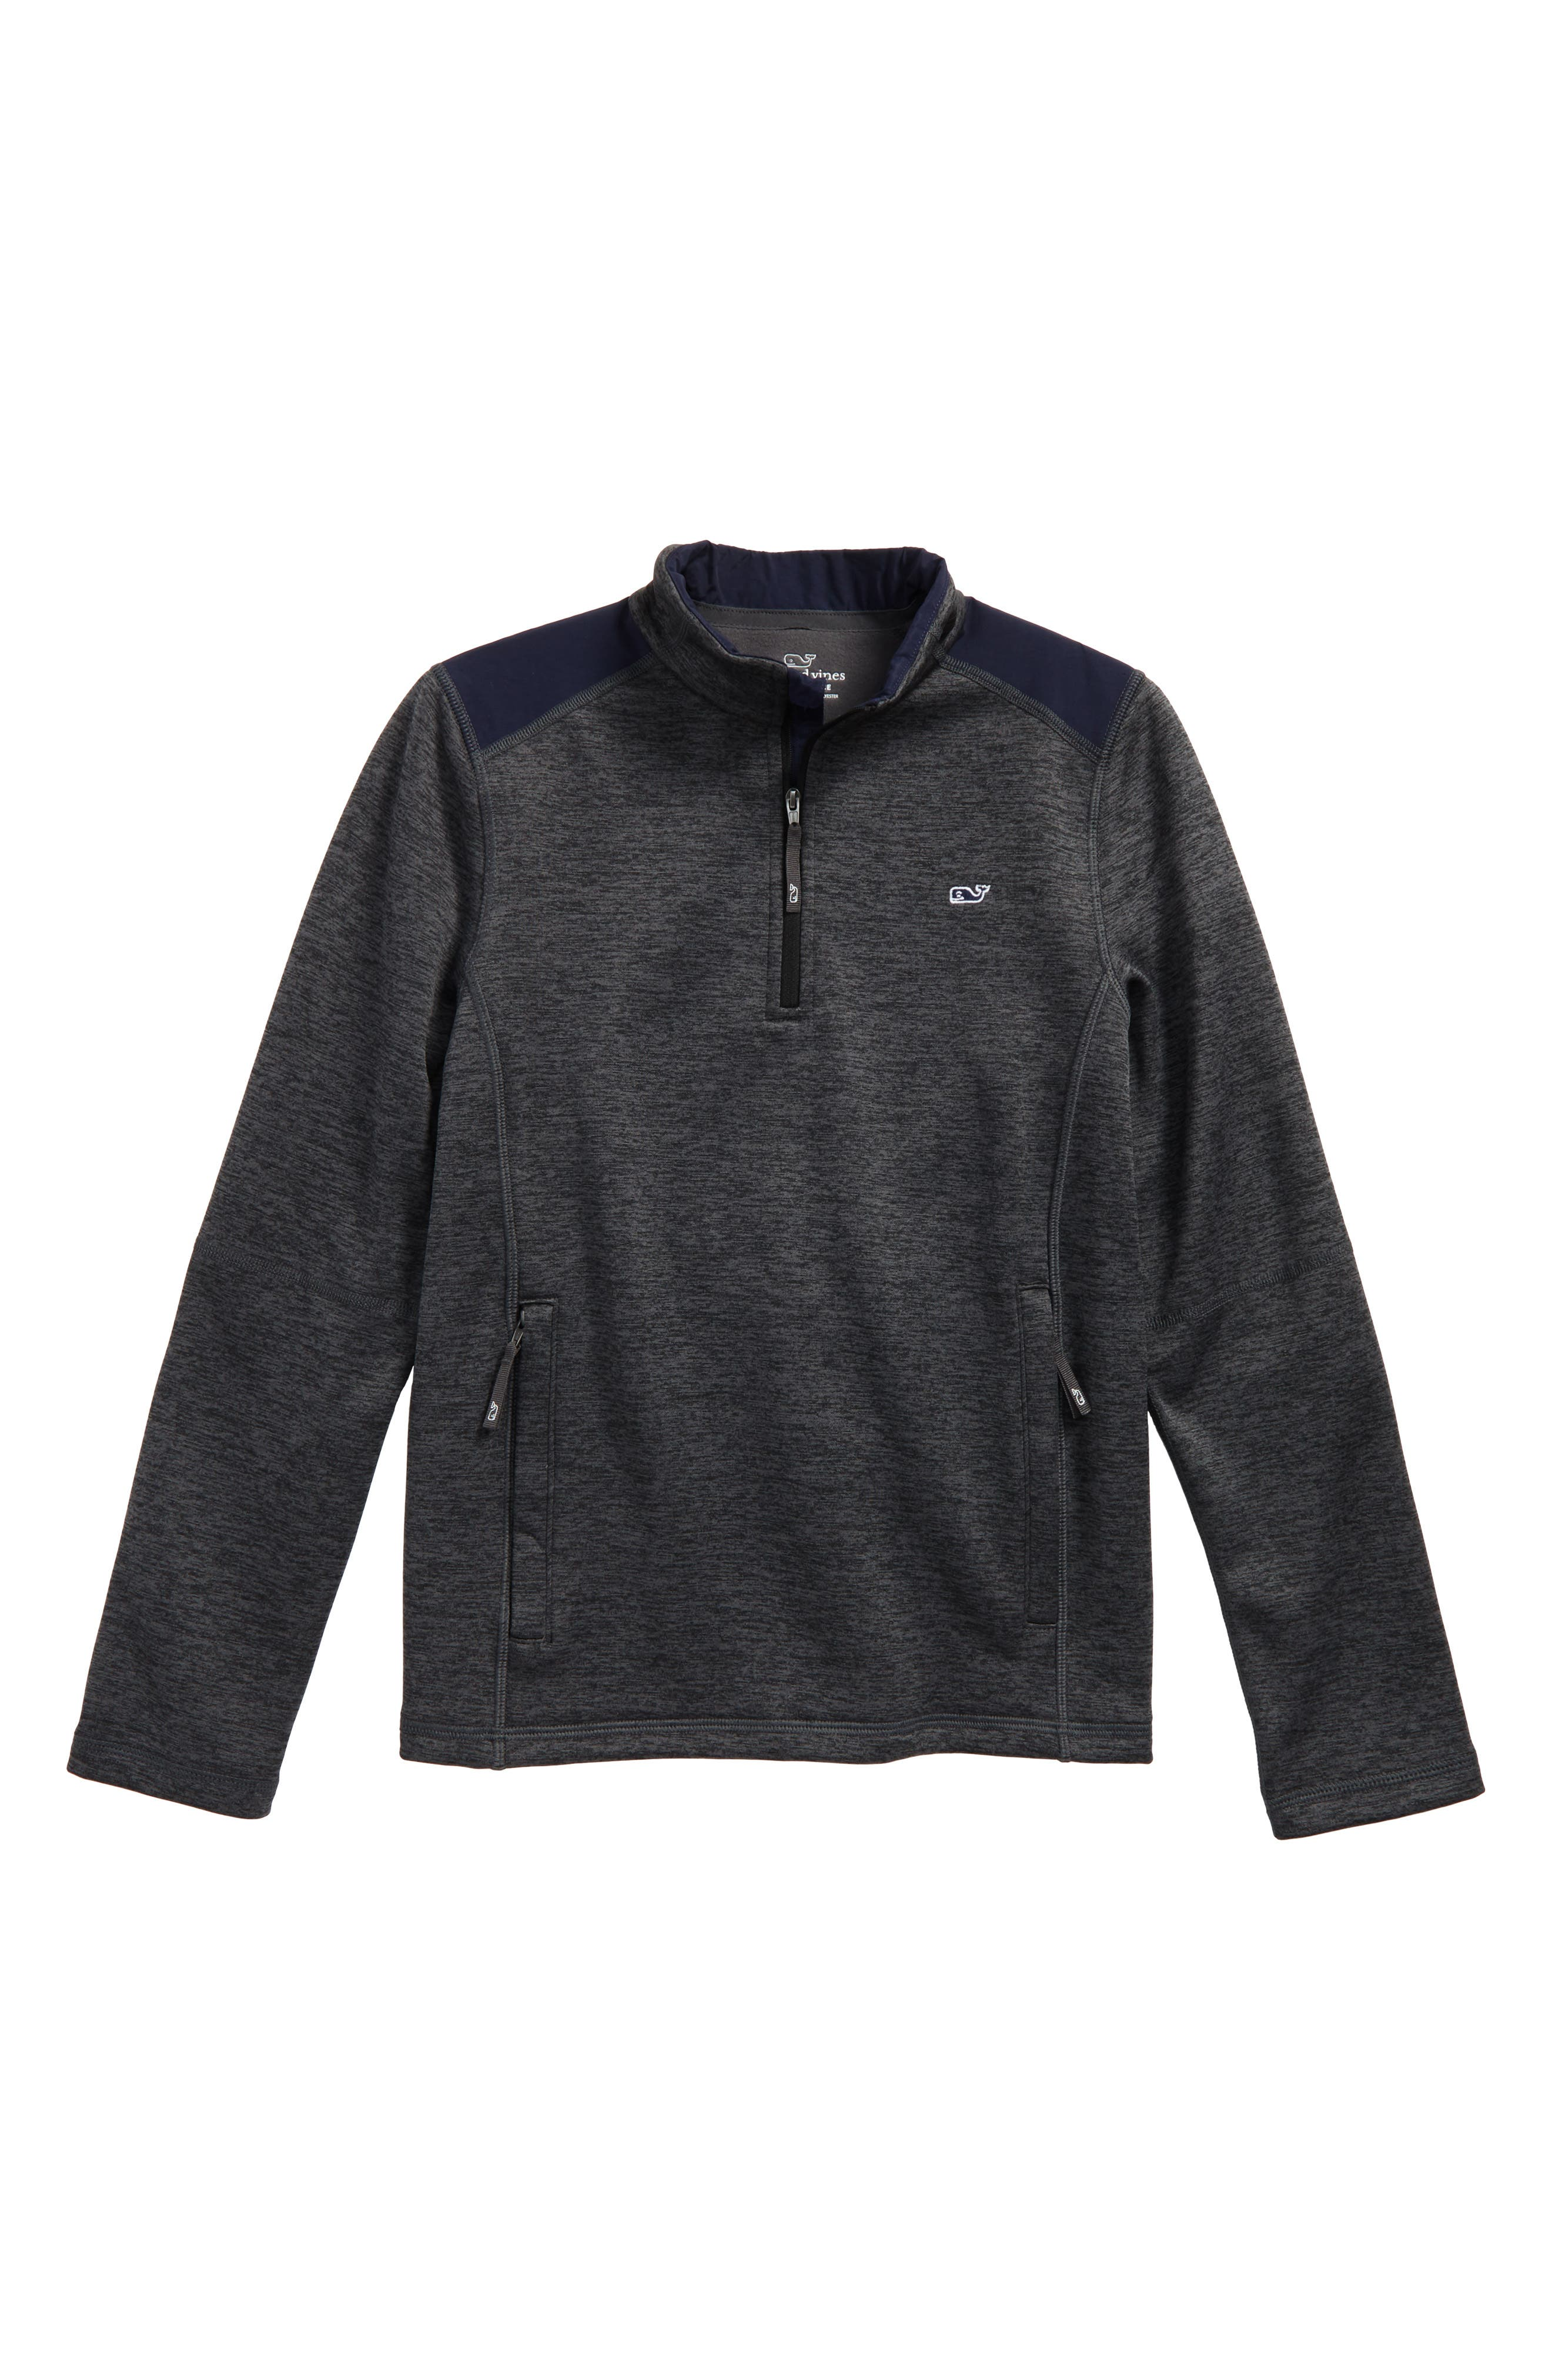 Performance Quarter Zip Pullover,                             Main thumbnail 1, color,                             056